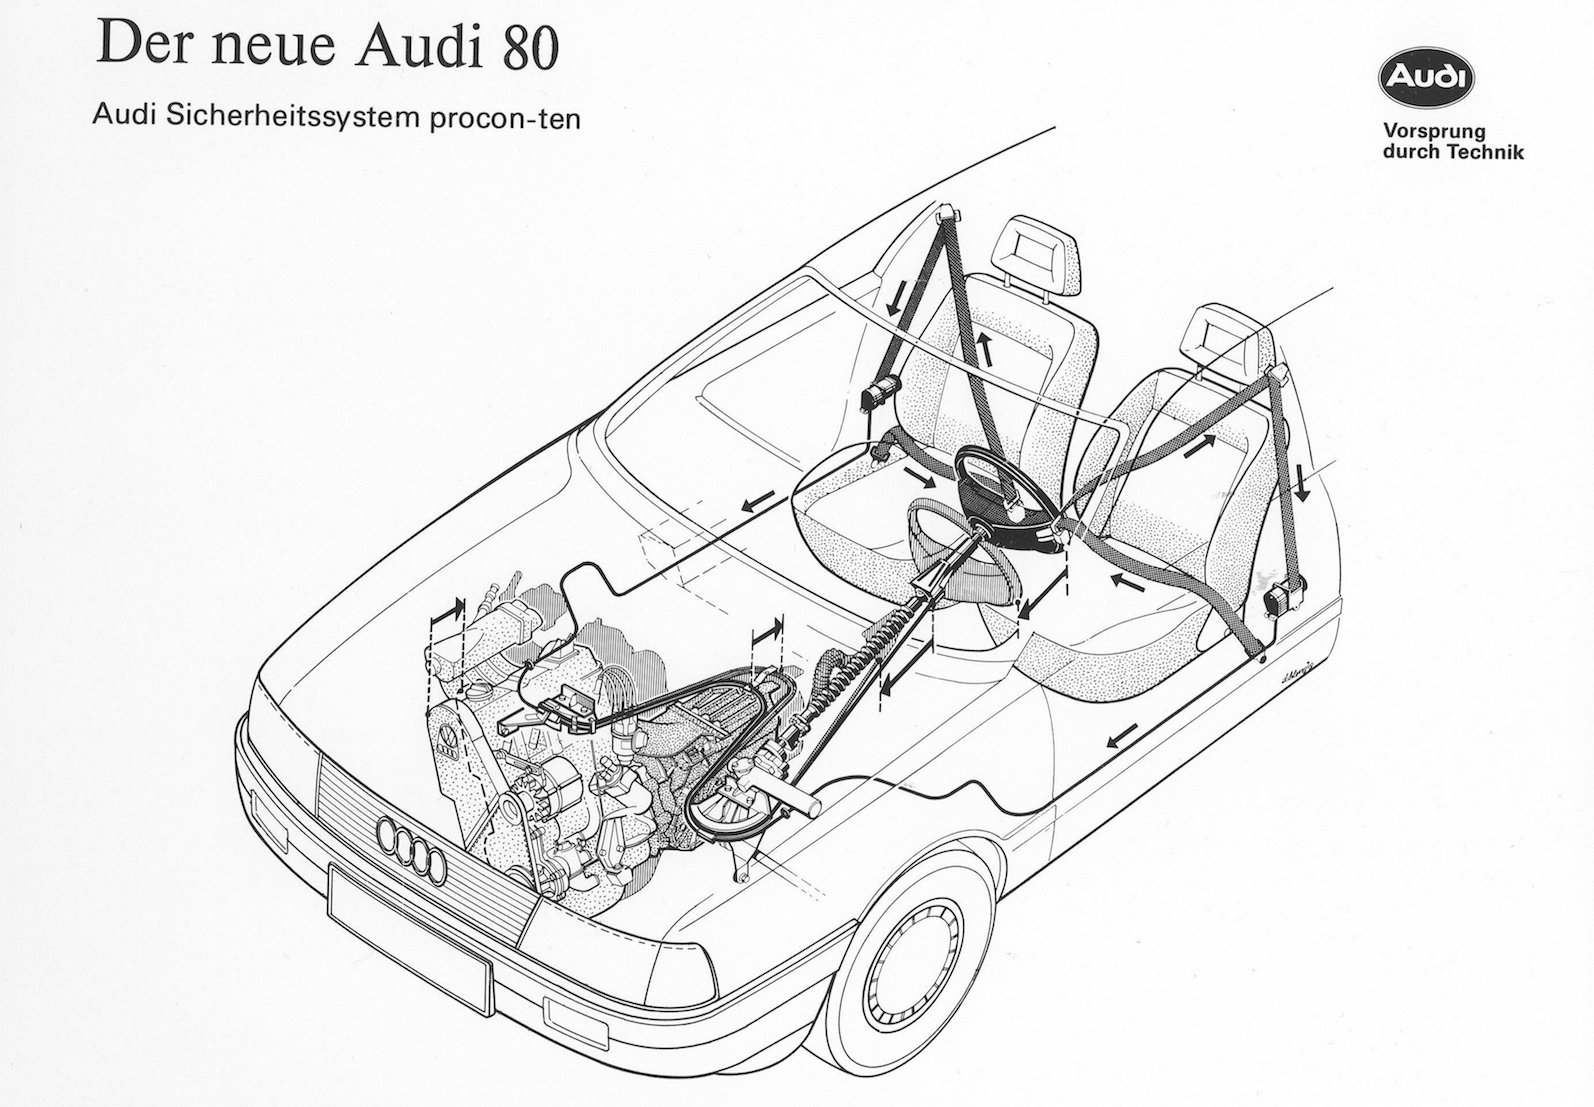 Audi Safety-system Procon-ten